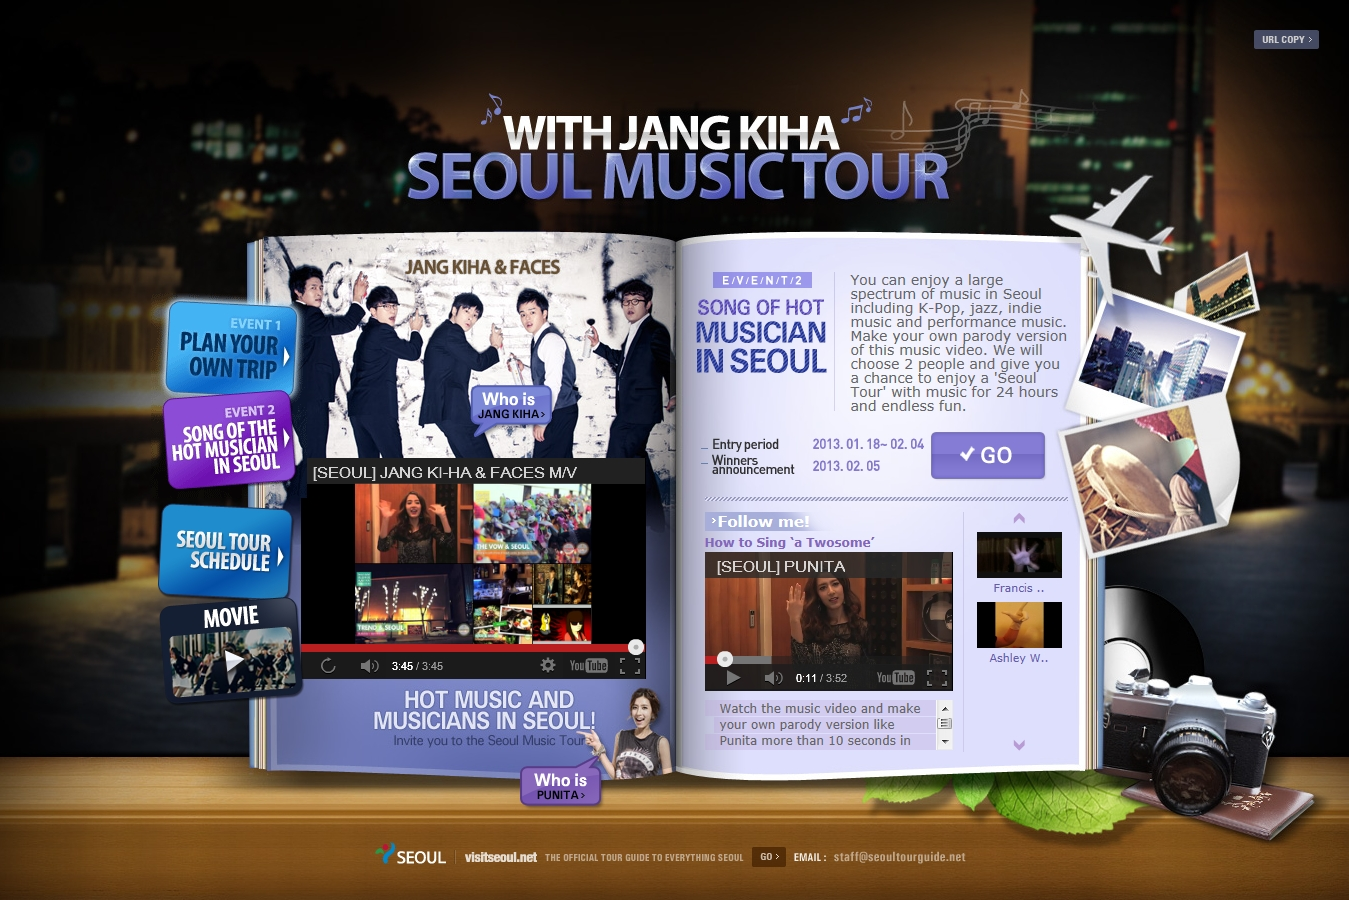 """Get Ready for """"With Jang Kiha Seoul Music Tour"""""""